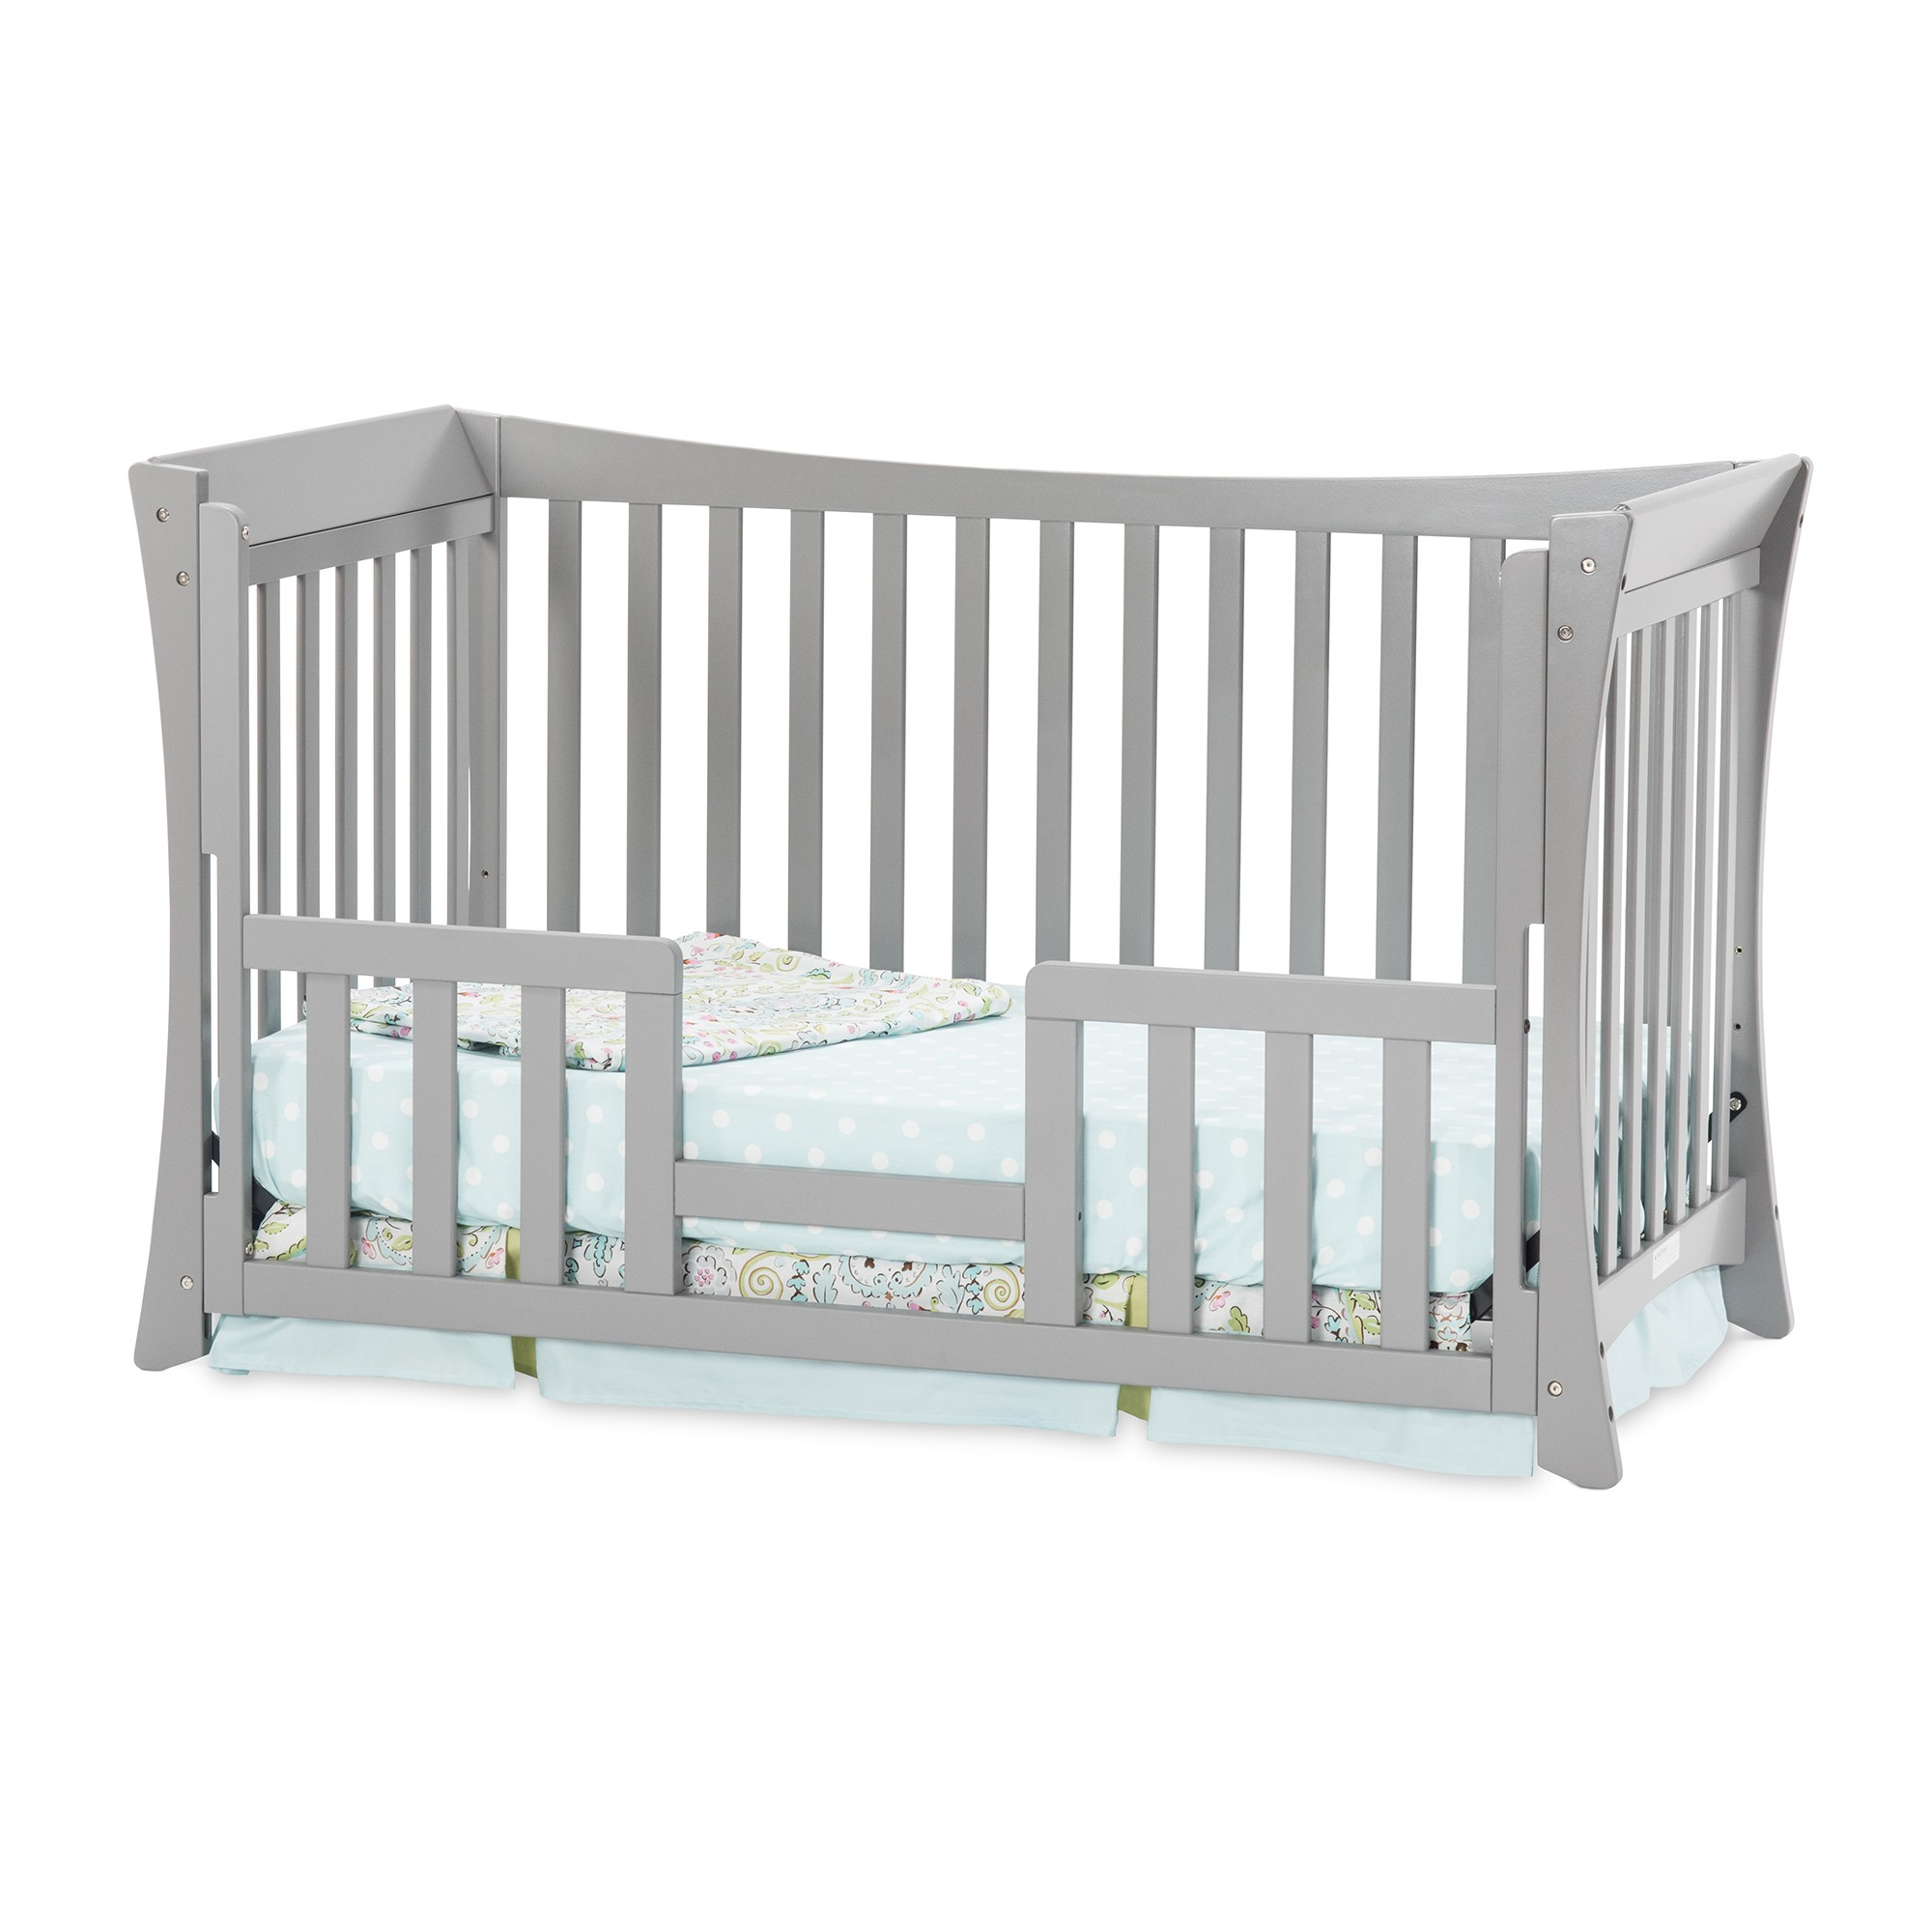 watterson affordable child craft crib latest cribs with convertible london trendy